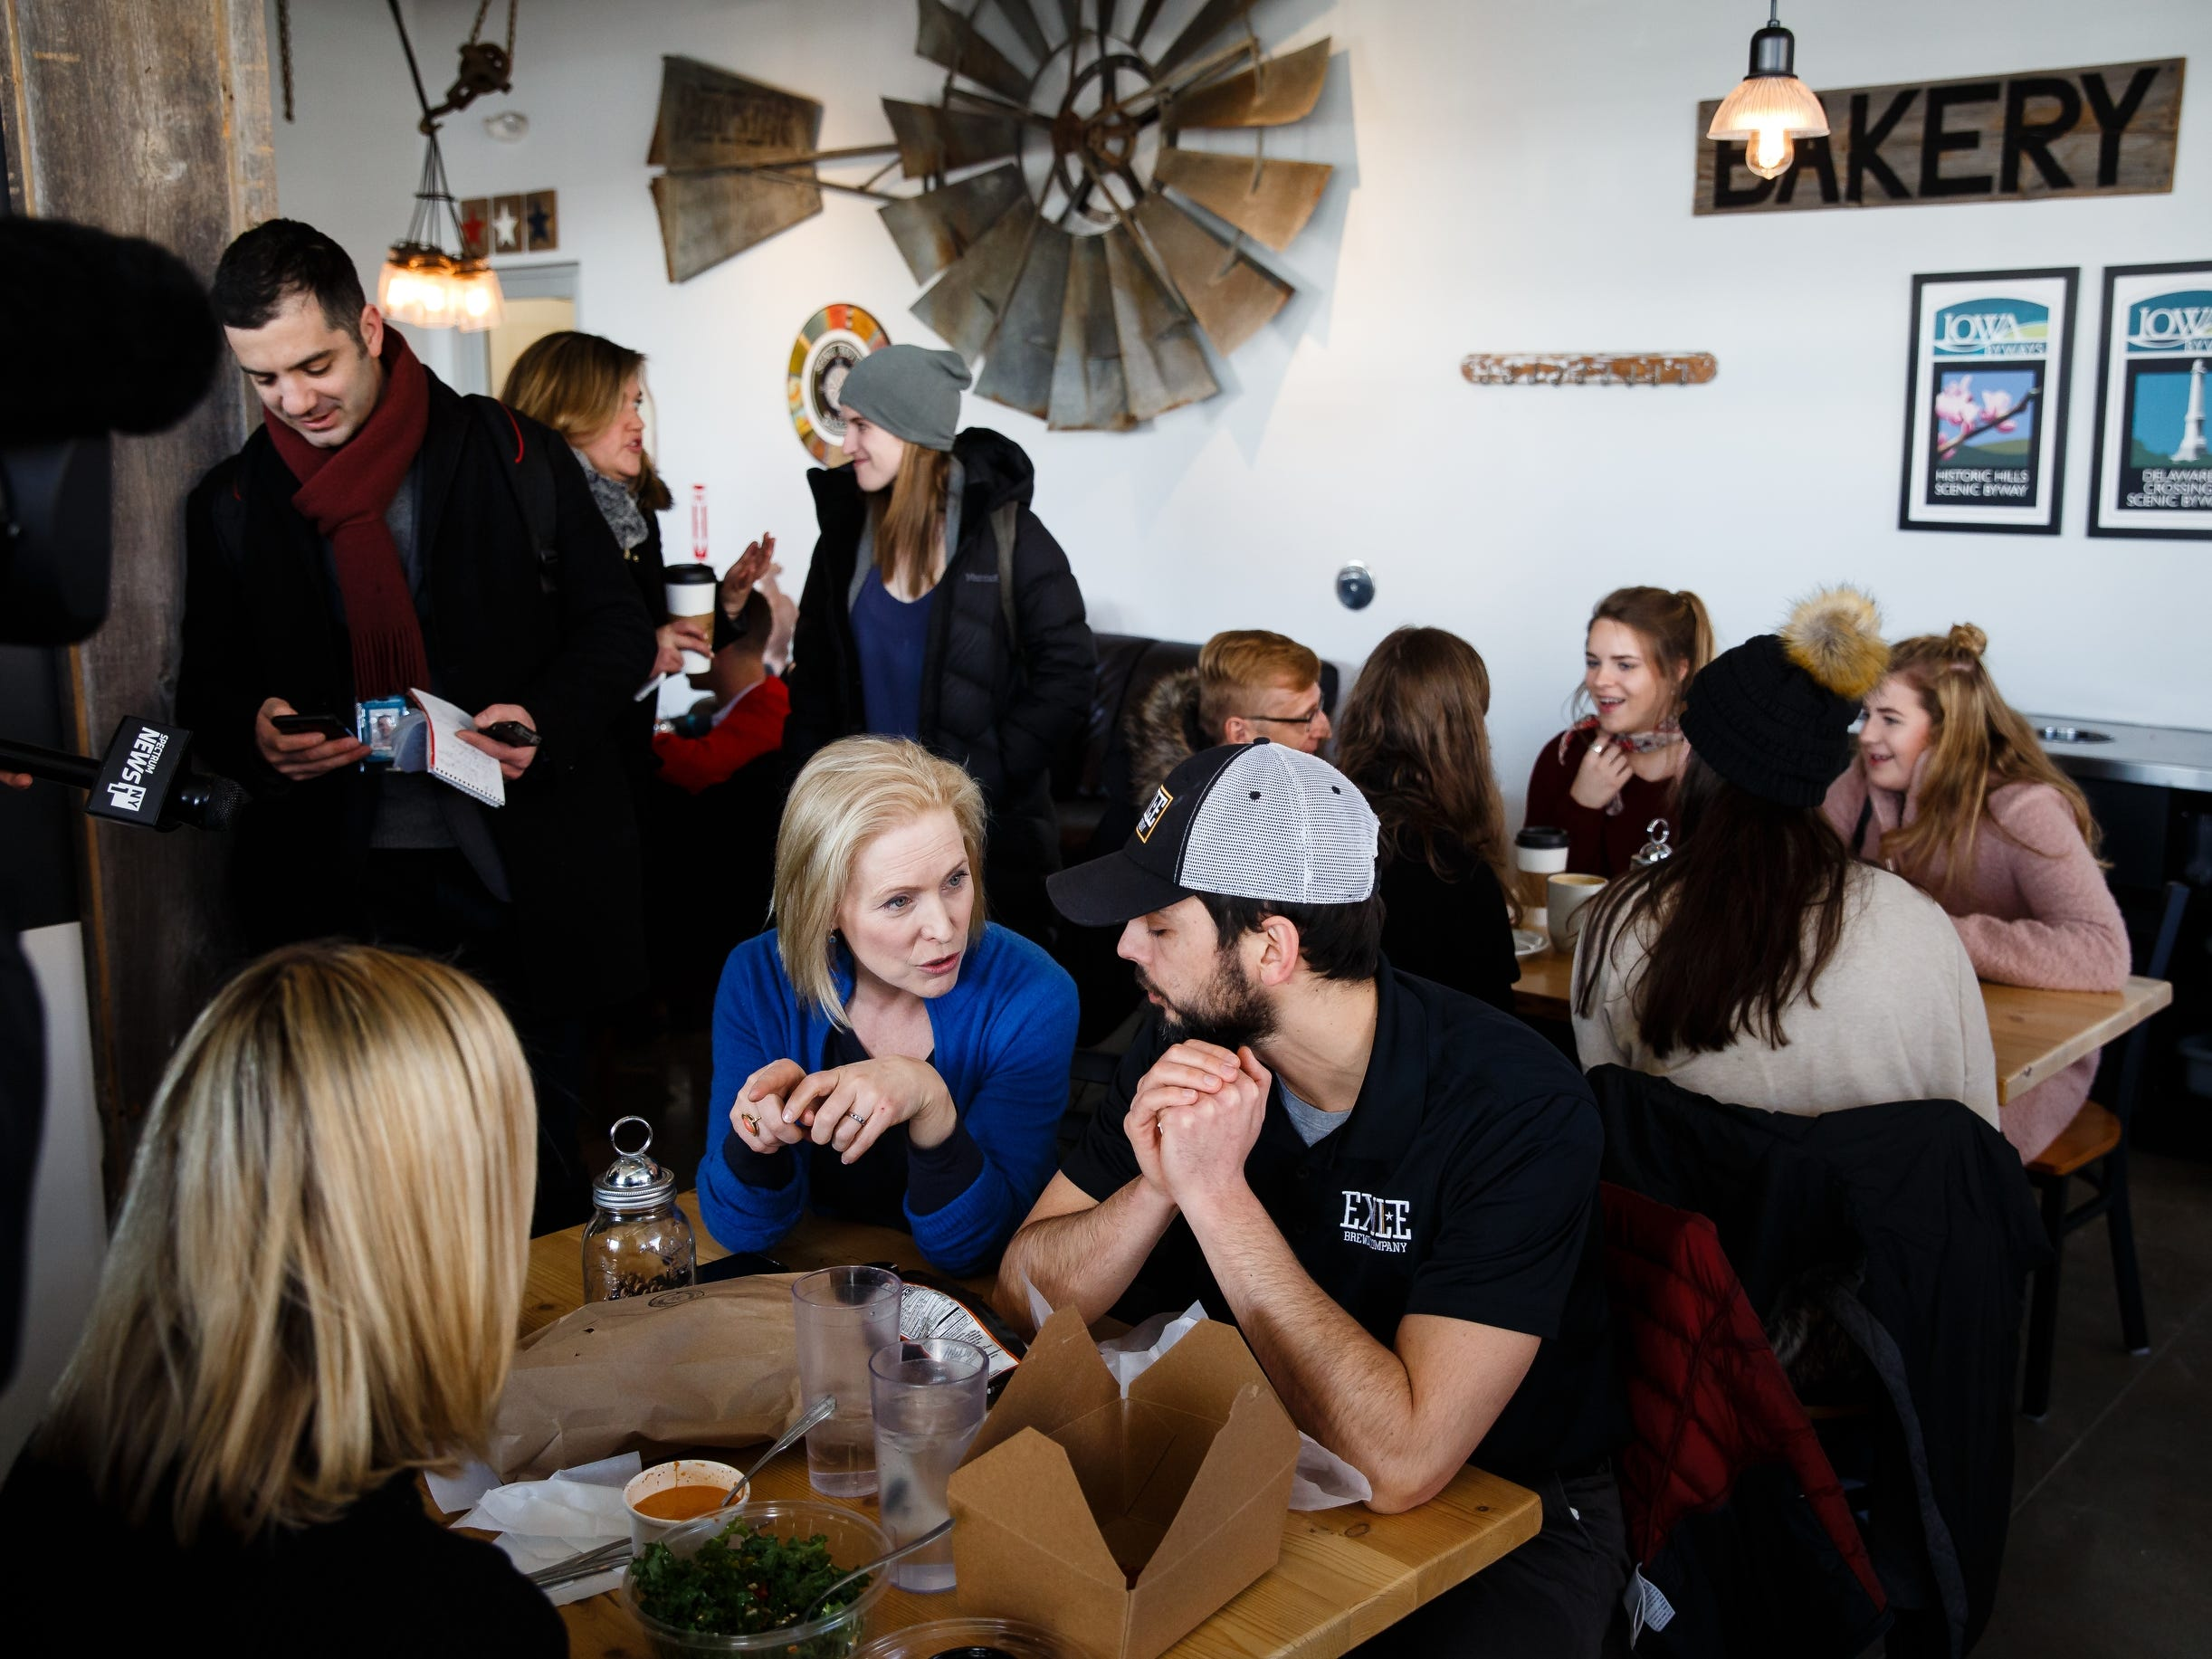 During a walking tour of the East Village, Sen. Kirsten Gillibrand of New York stops at Scenic Route bakery to talk to voters including R.J. Tursi, center, on Saturday, Jan. 19, 2019, in Des Moines.